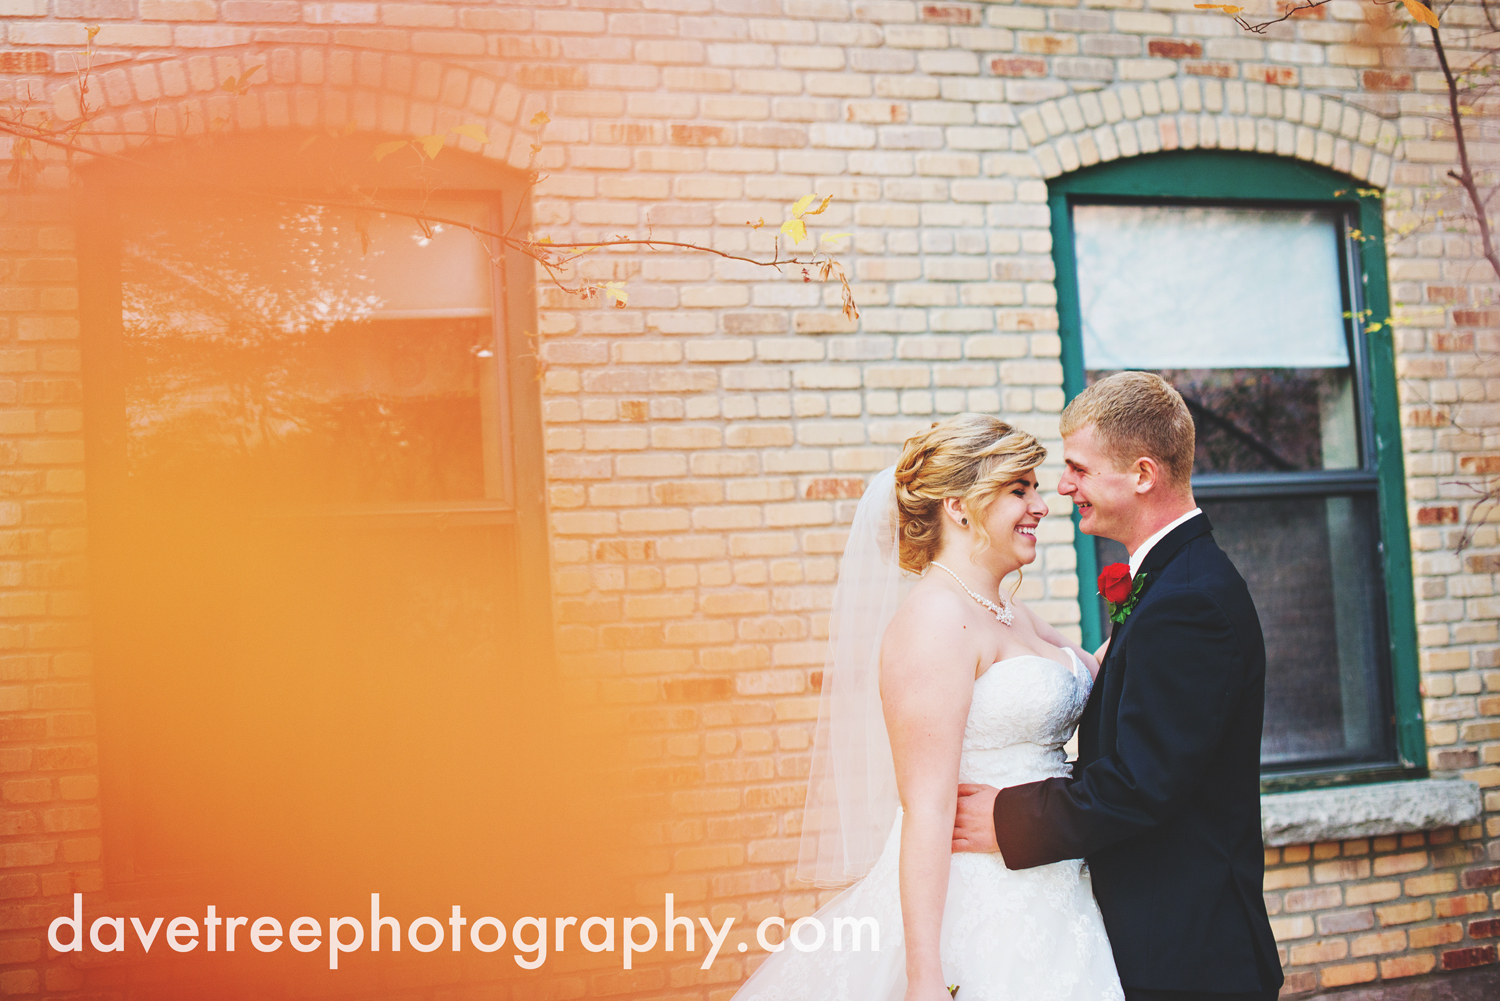 holland_wedding_photographer_10.jpg